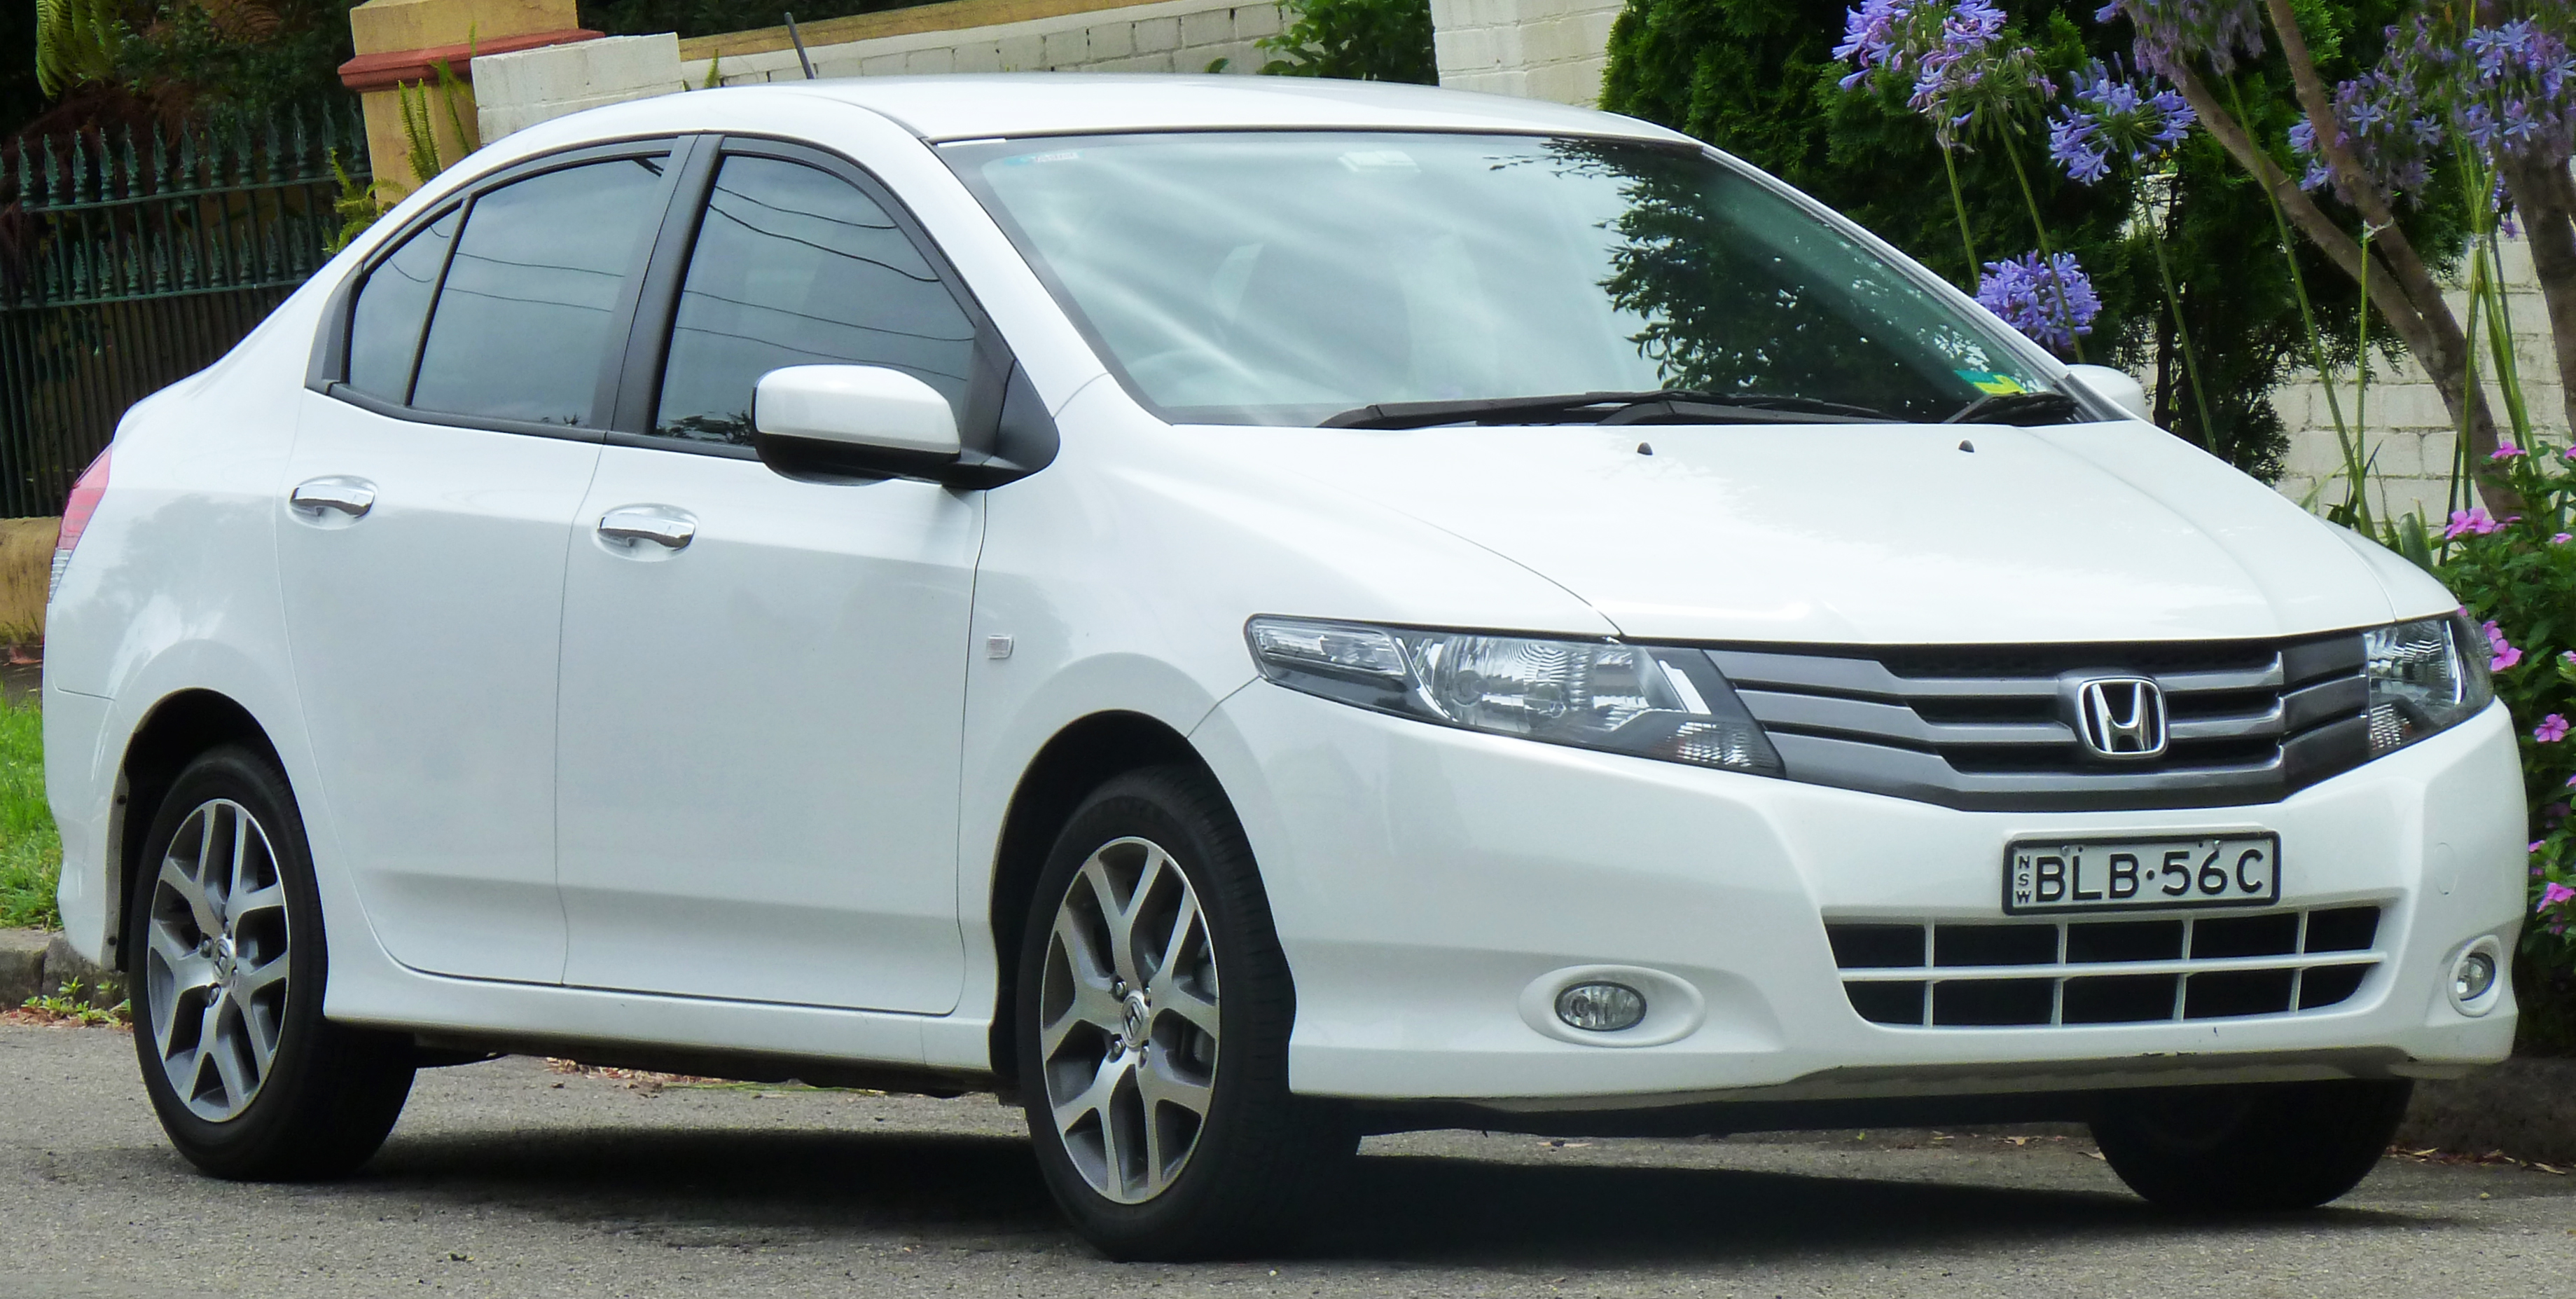 File:2009 Honda City (GM2 MY09) VTi L Sedan (2011